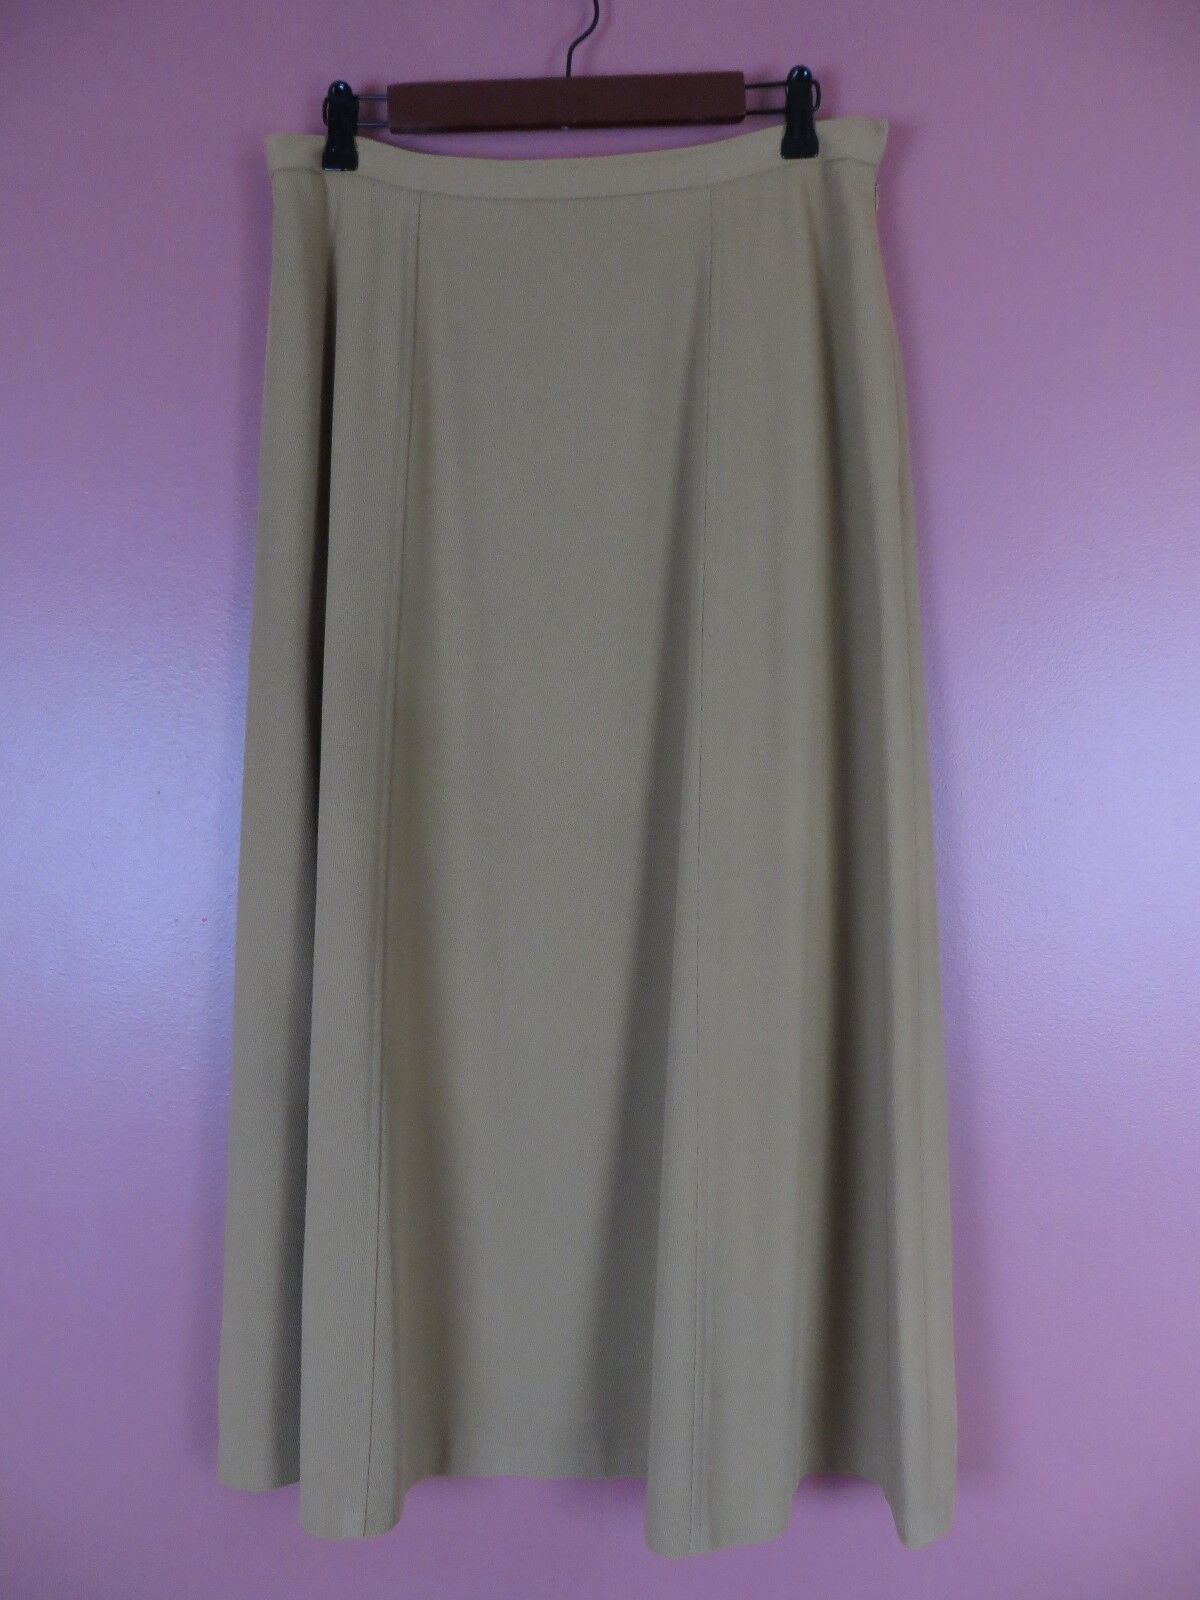 SK11769- JONES WEAR 65% Polyester Paneled Flared Full Skirt Gallant gold Sz 14